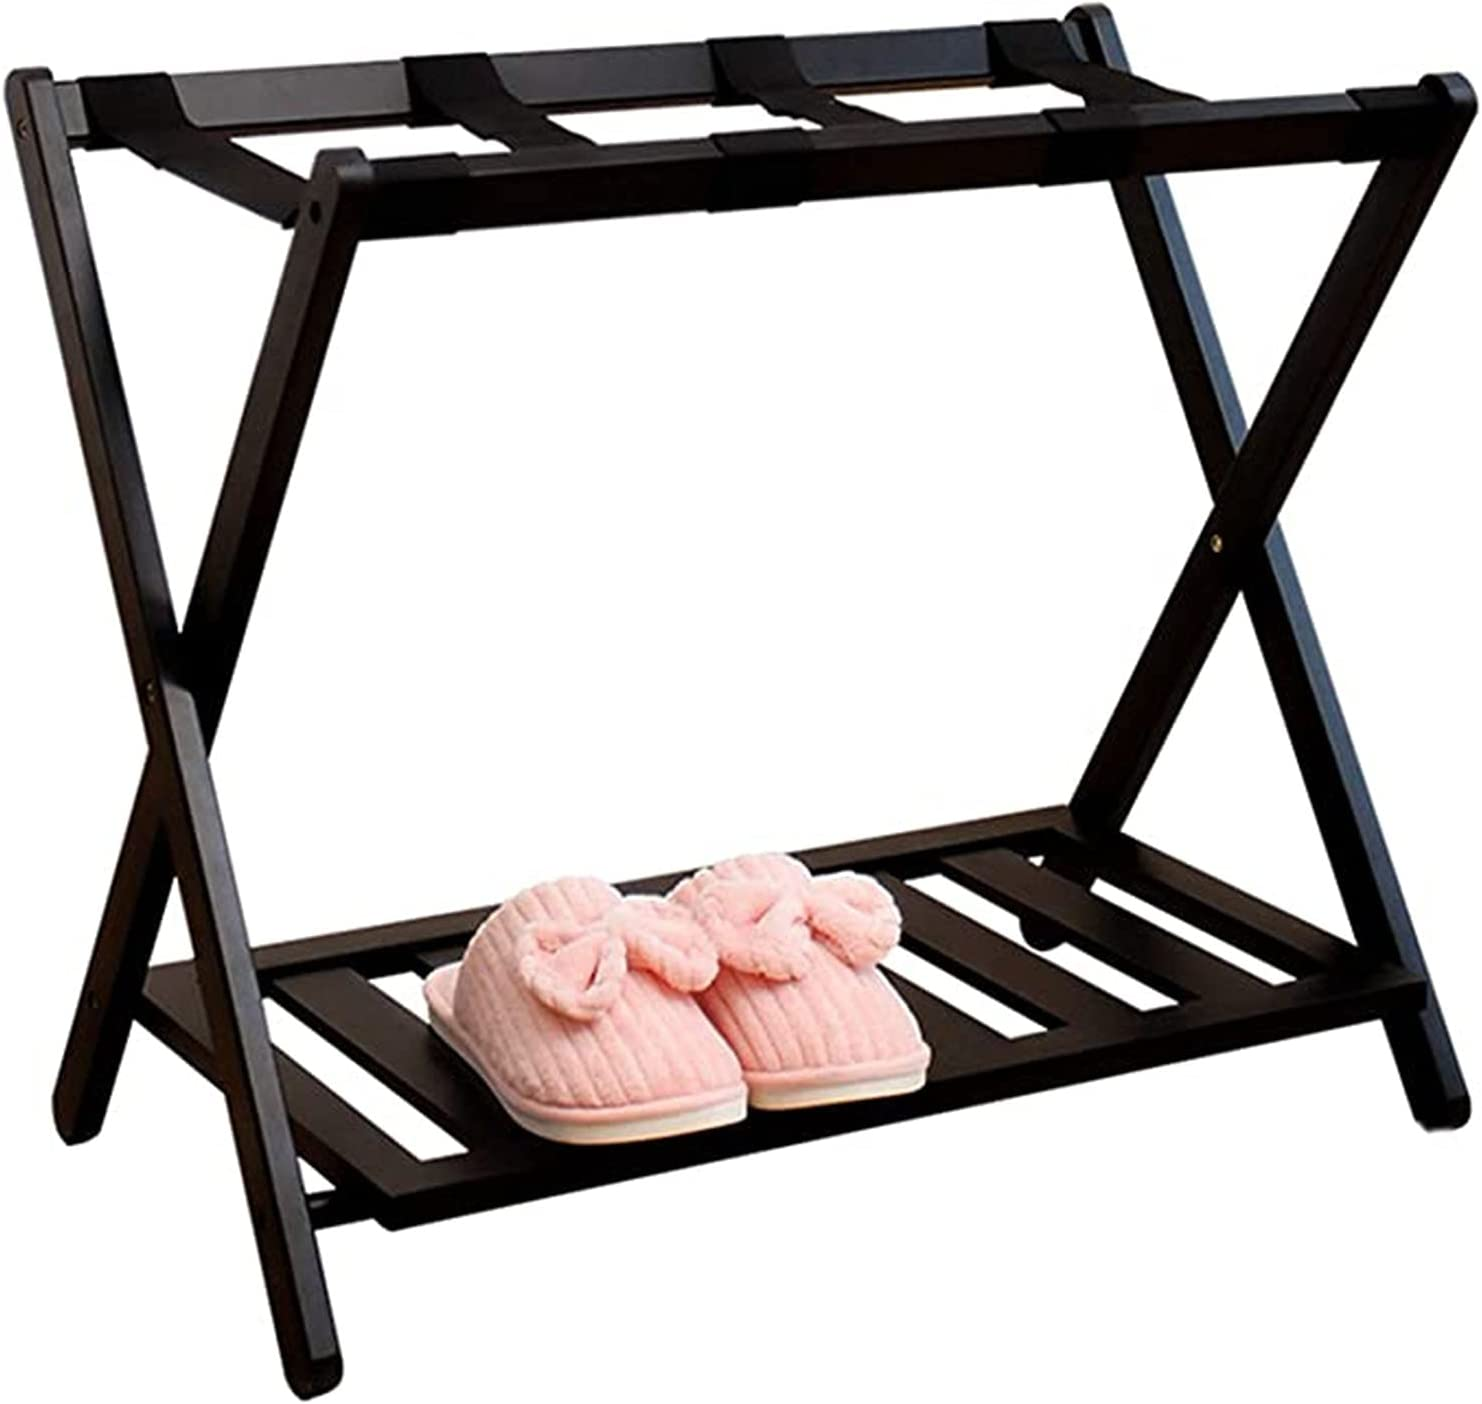 WERTY Luggage Rack with Shelf Lowest price challenge Stand Suitcase D Folding Dealing full price reduction